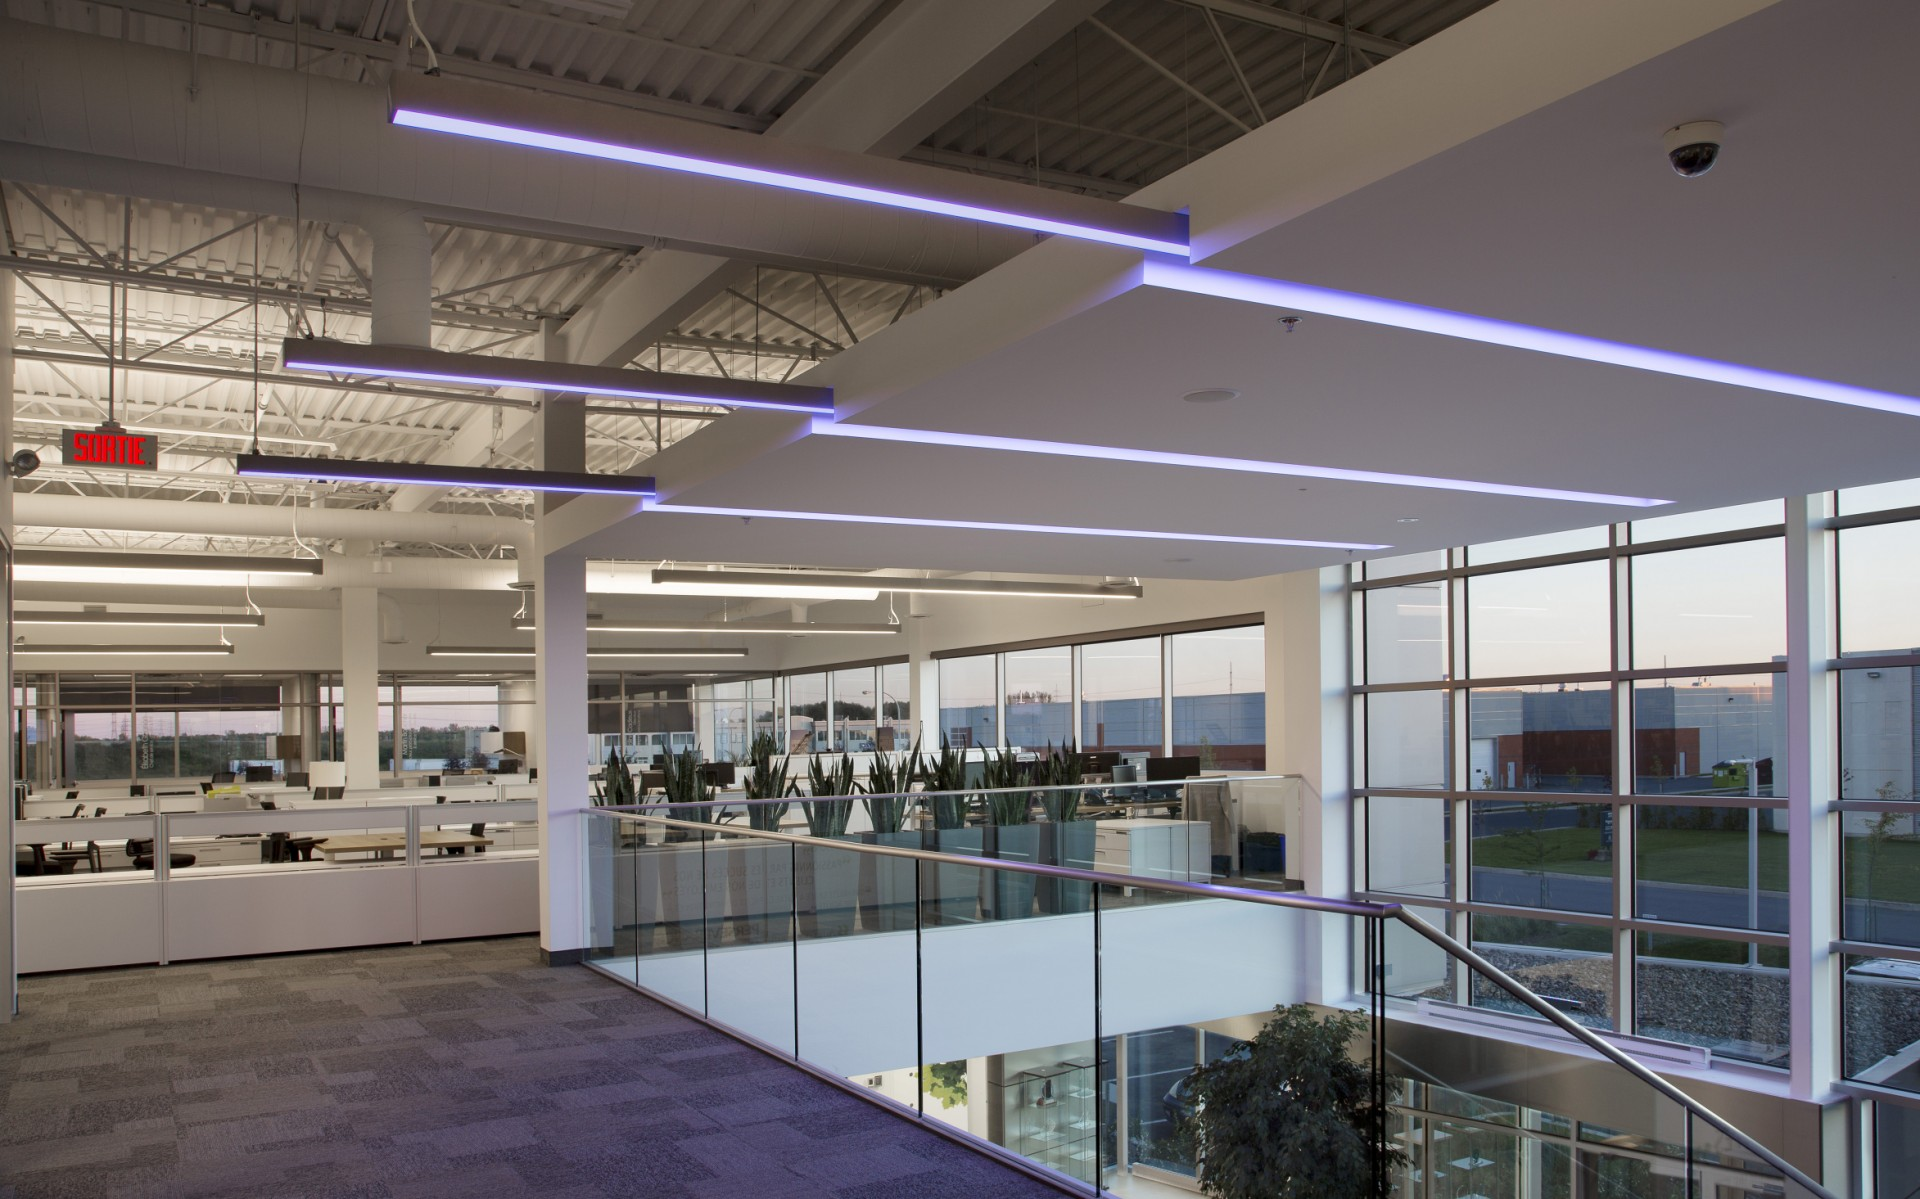 Beyond the atrium, open plan office spaces are lit with Lumenline Pendant Direct/Indirect luminaires.